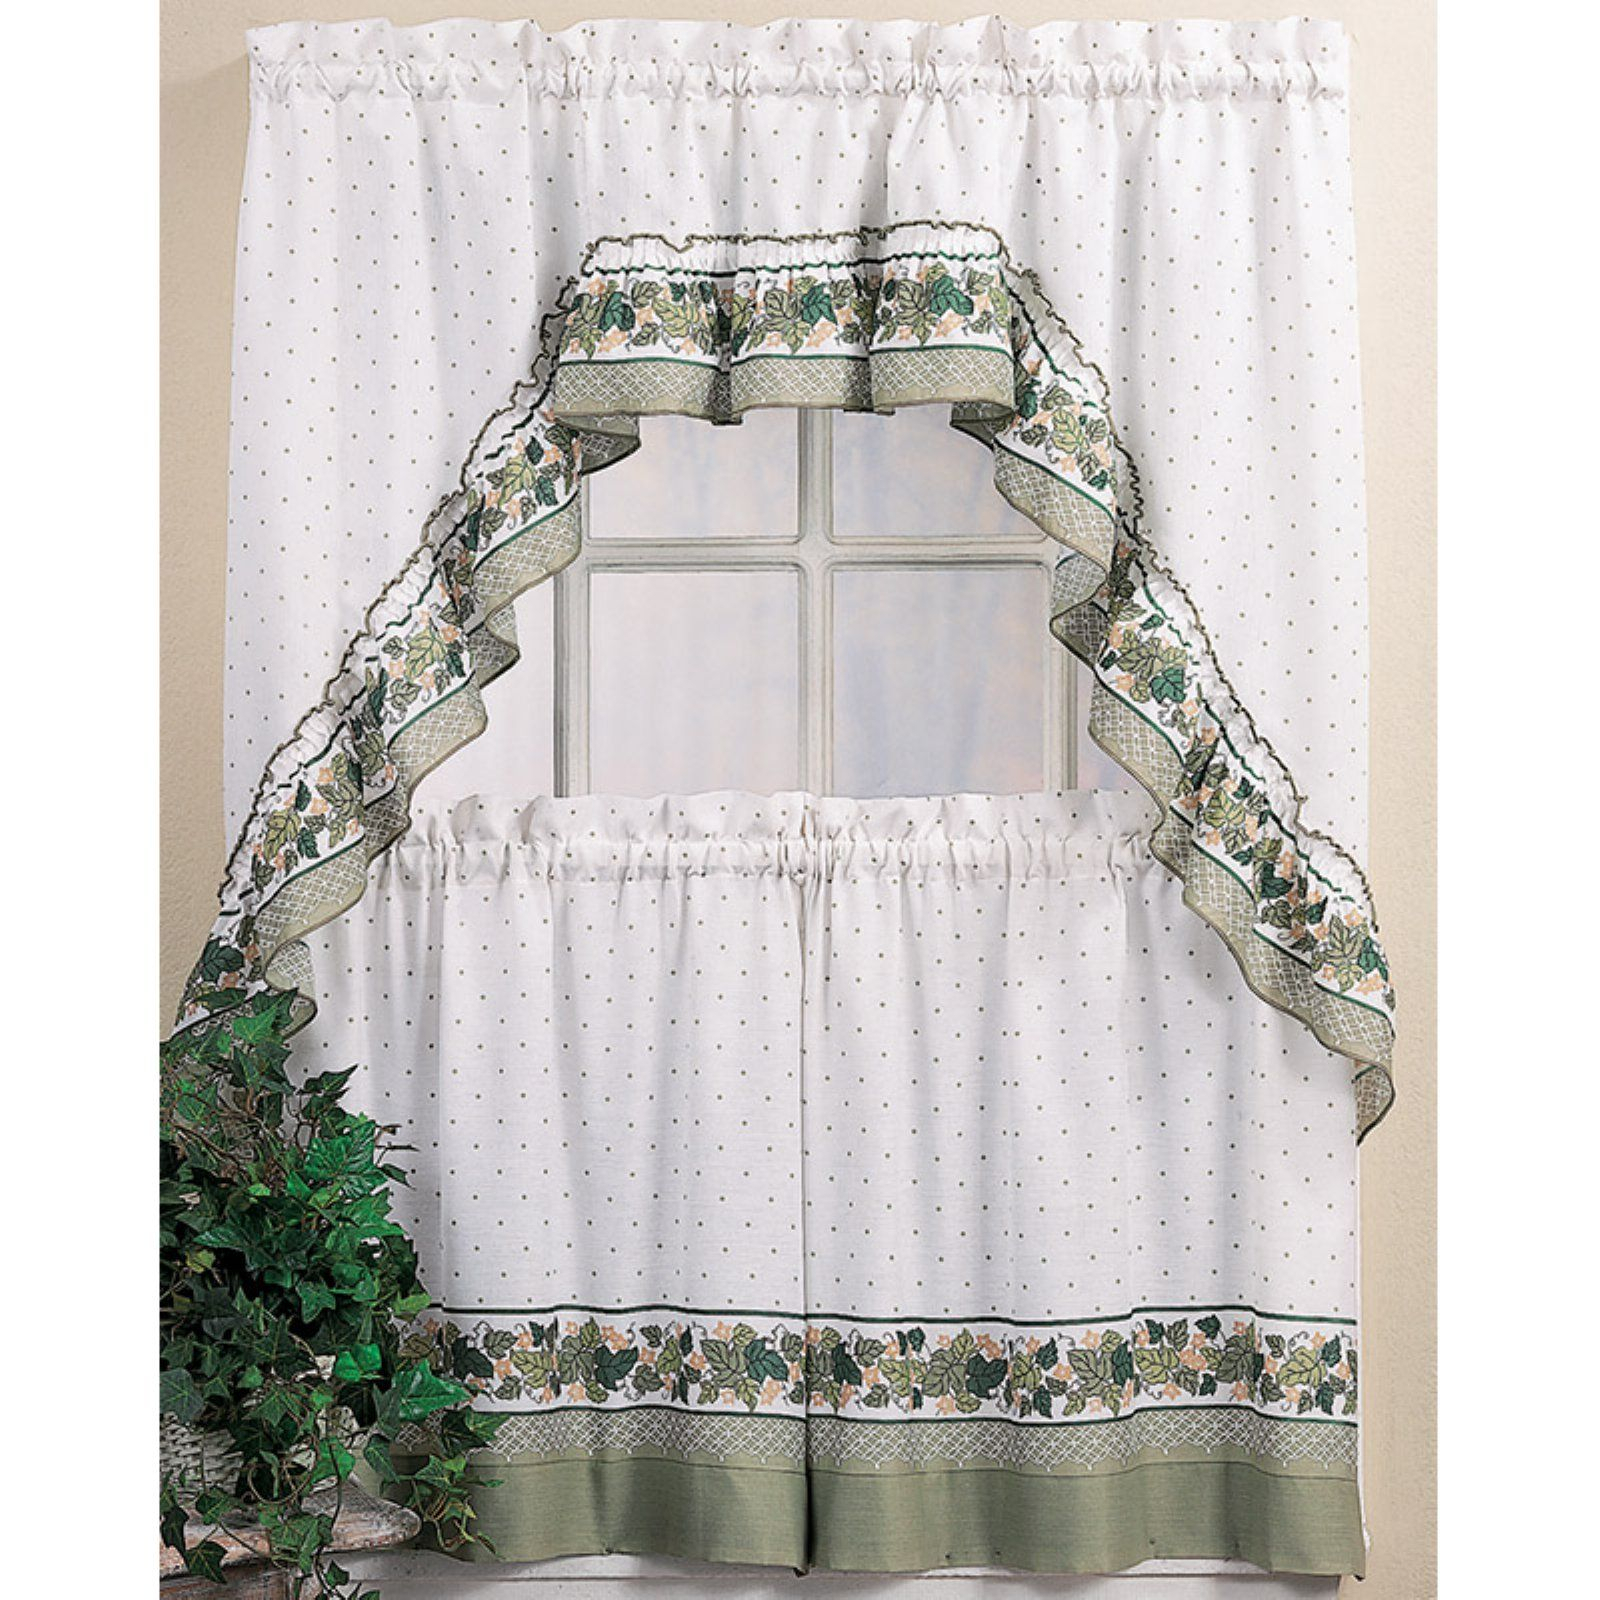 Chf Industries Cottage Ivy Kitchen Curtain Set | Products En Pertaining To Country Style Curtain Parts With White Daisy Lace Accent (View 5 of 20)